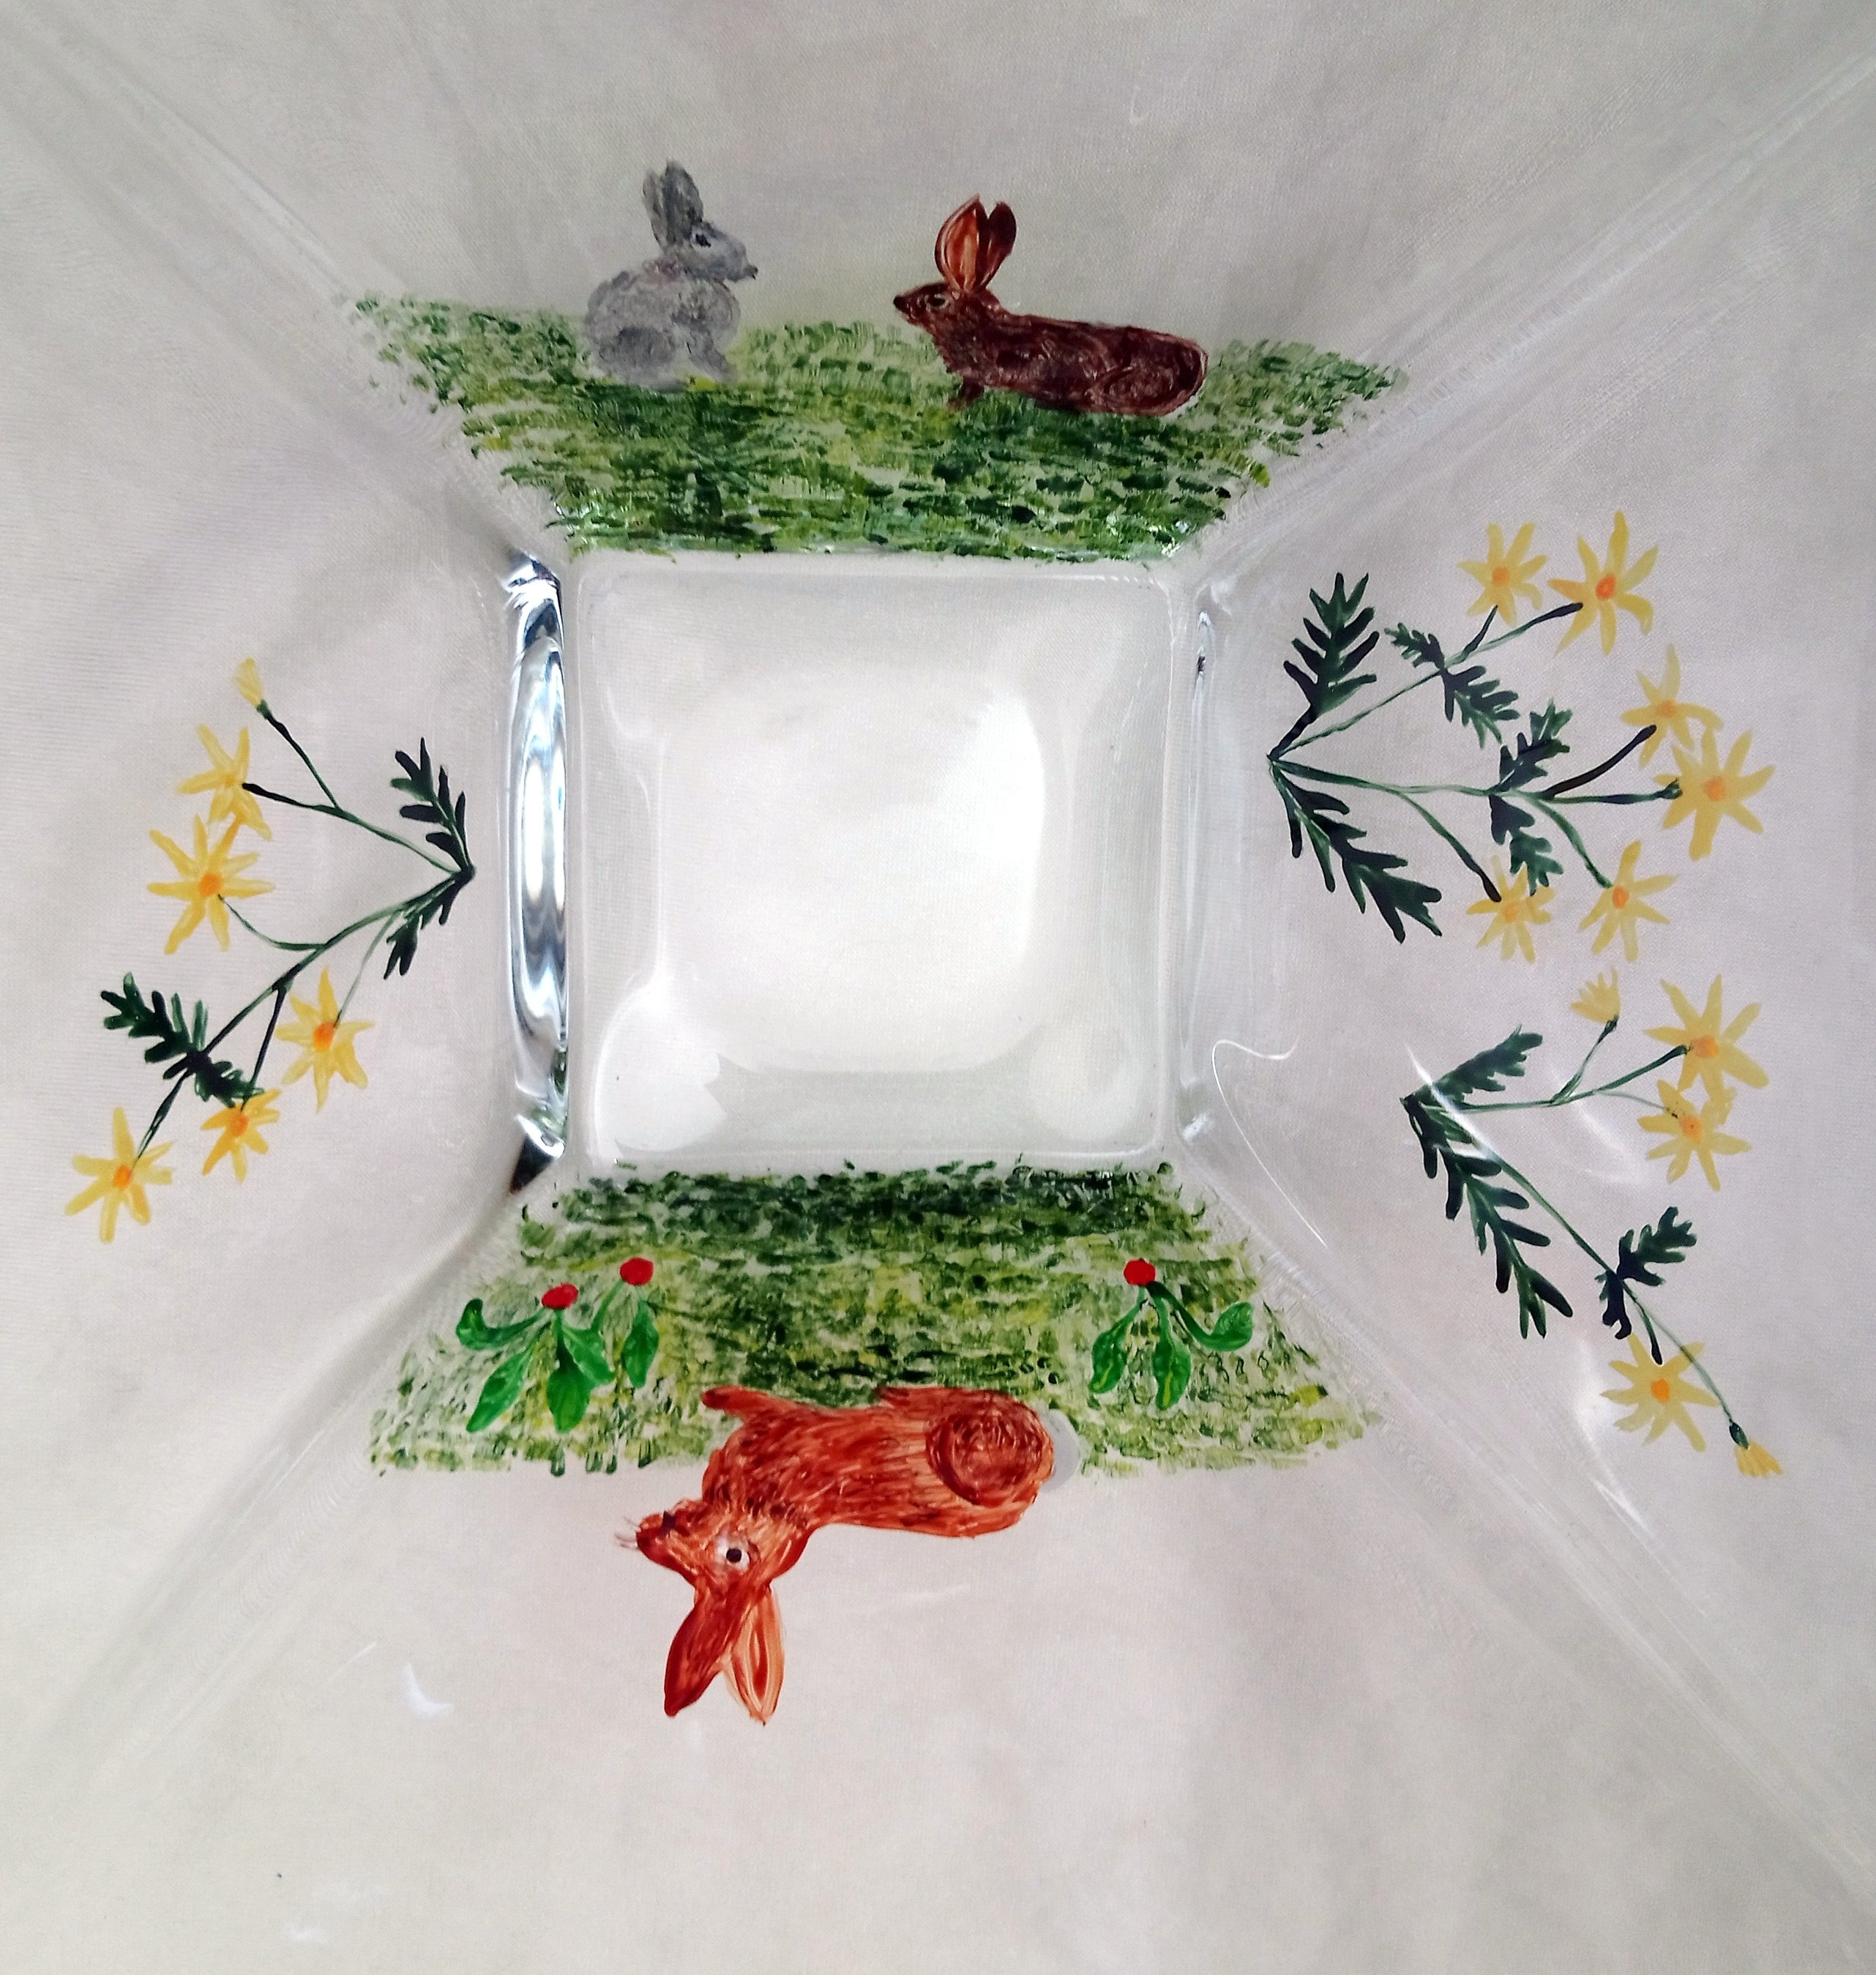 Rabbit square glass bowl painting, view from above